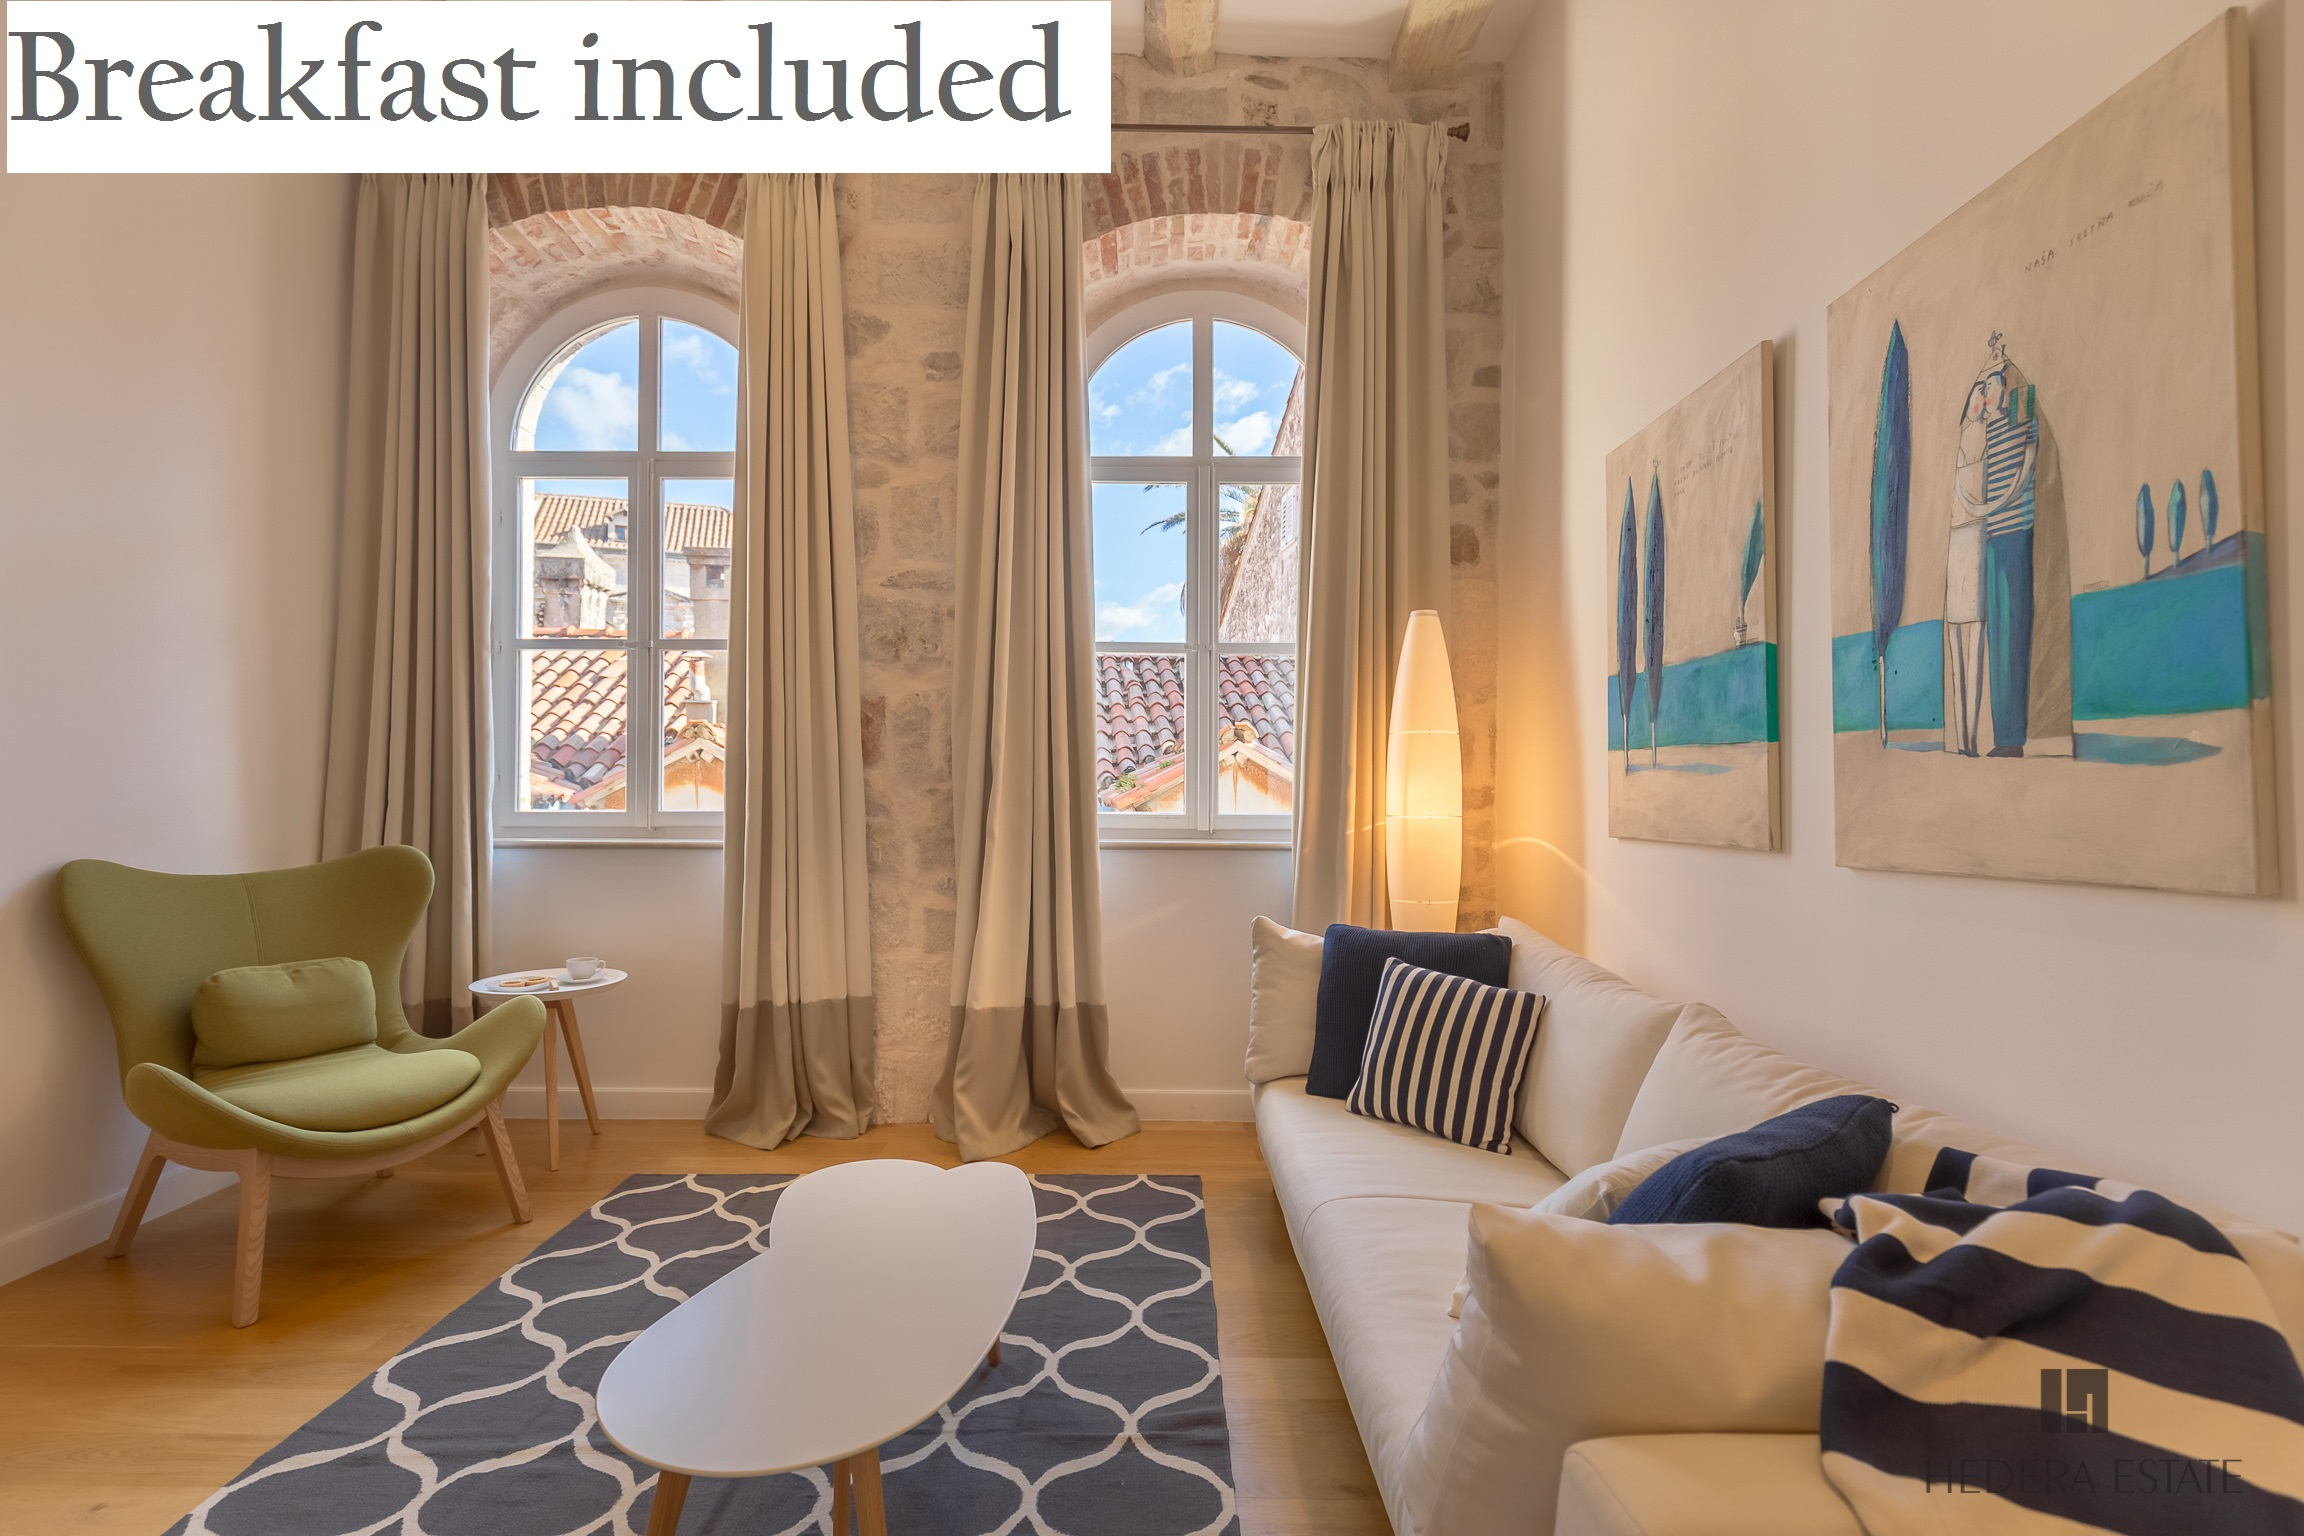 <p>Sleeps 4<br />1 bedroom<br />1 bathroom and an&nbsp;extra&nbsp;toilet<br />Kitchen, dining area and living room<br />Additional bed on the gallery<br />Located in&nbsp;the Old Town<br />Distance from beach: 50 meters</p>